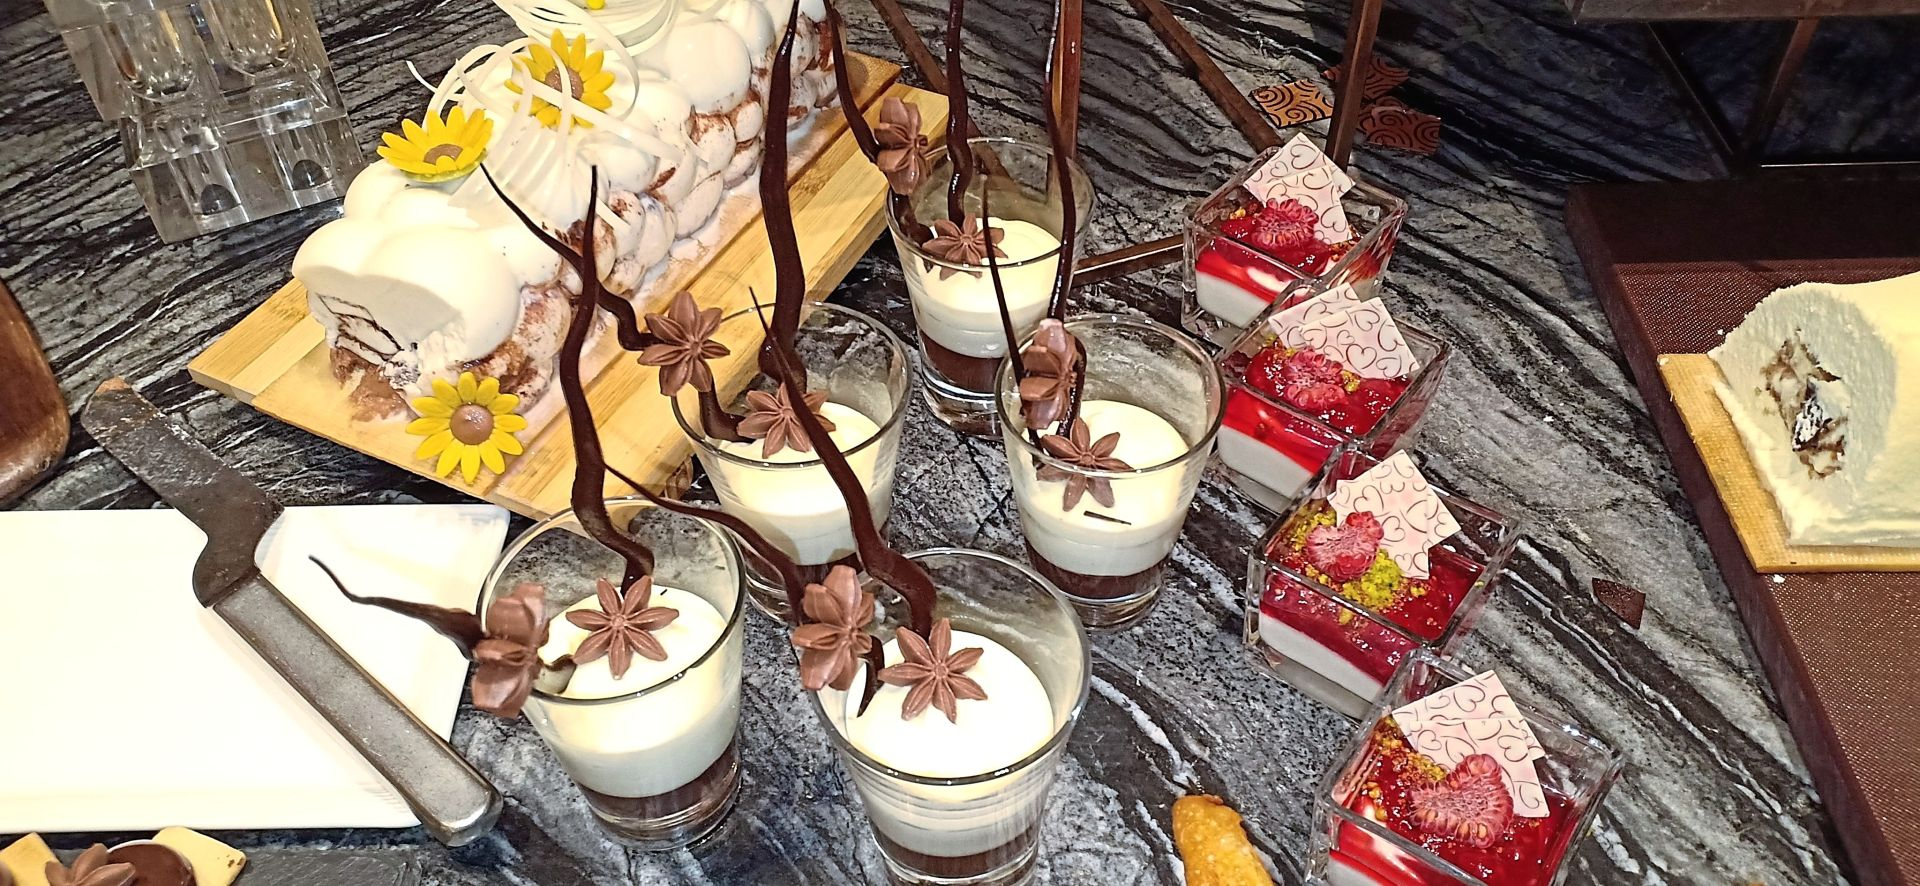 Feast boasts a wide selection of sweet offerings comprising cakes, pies and cookies.